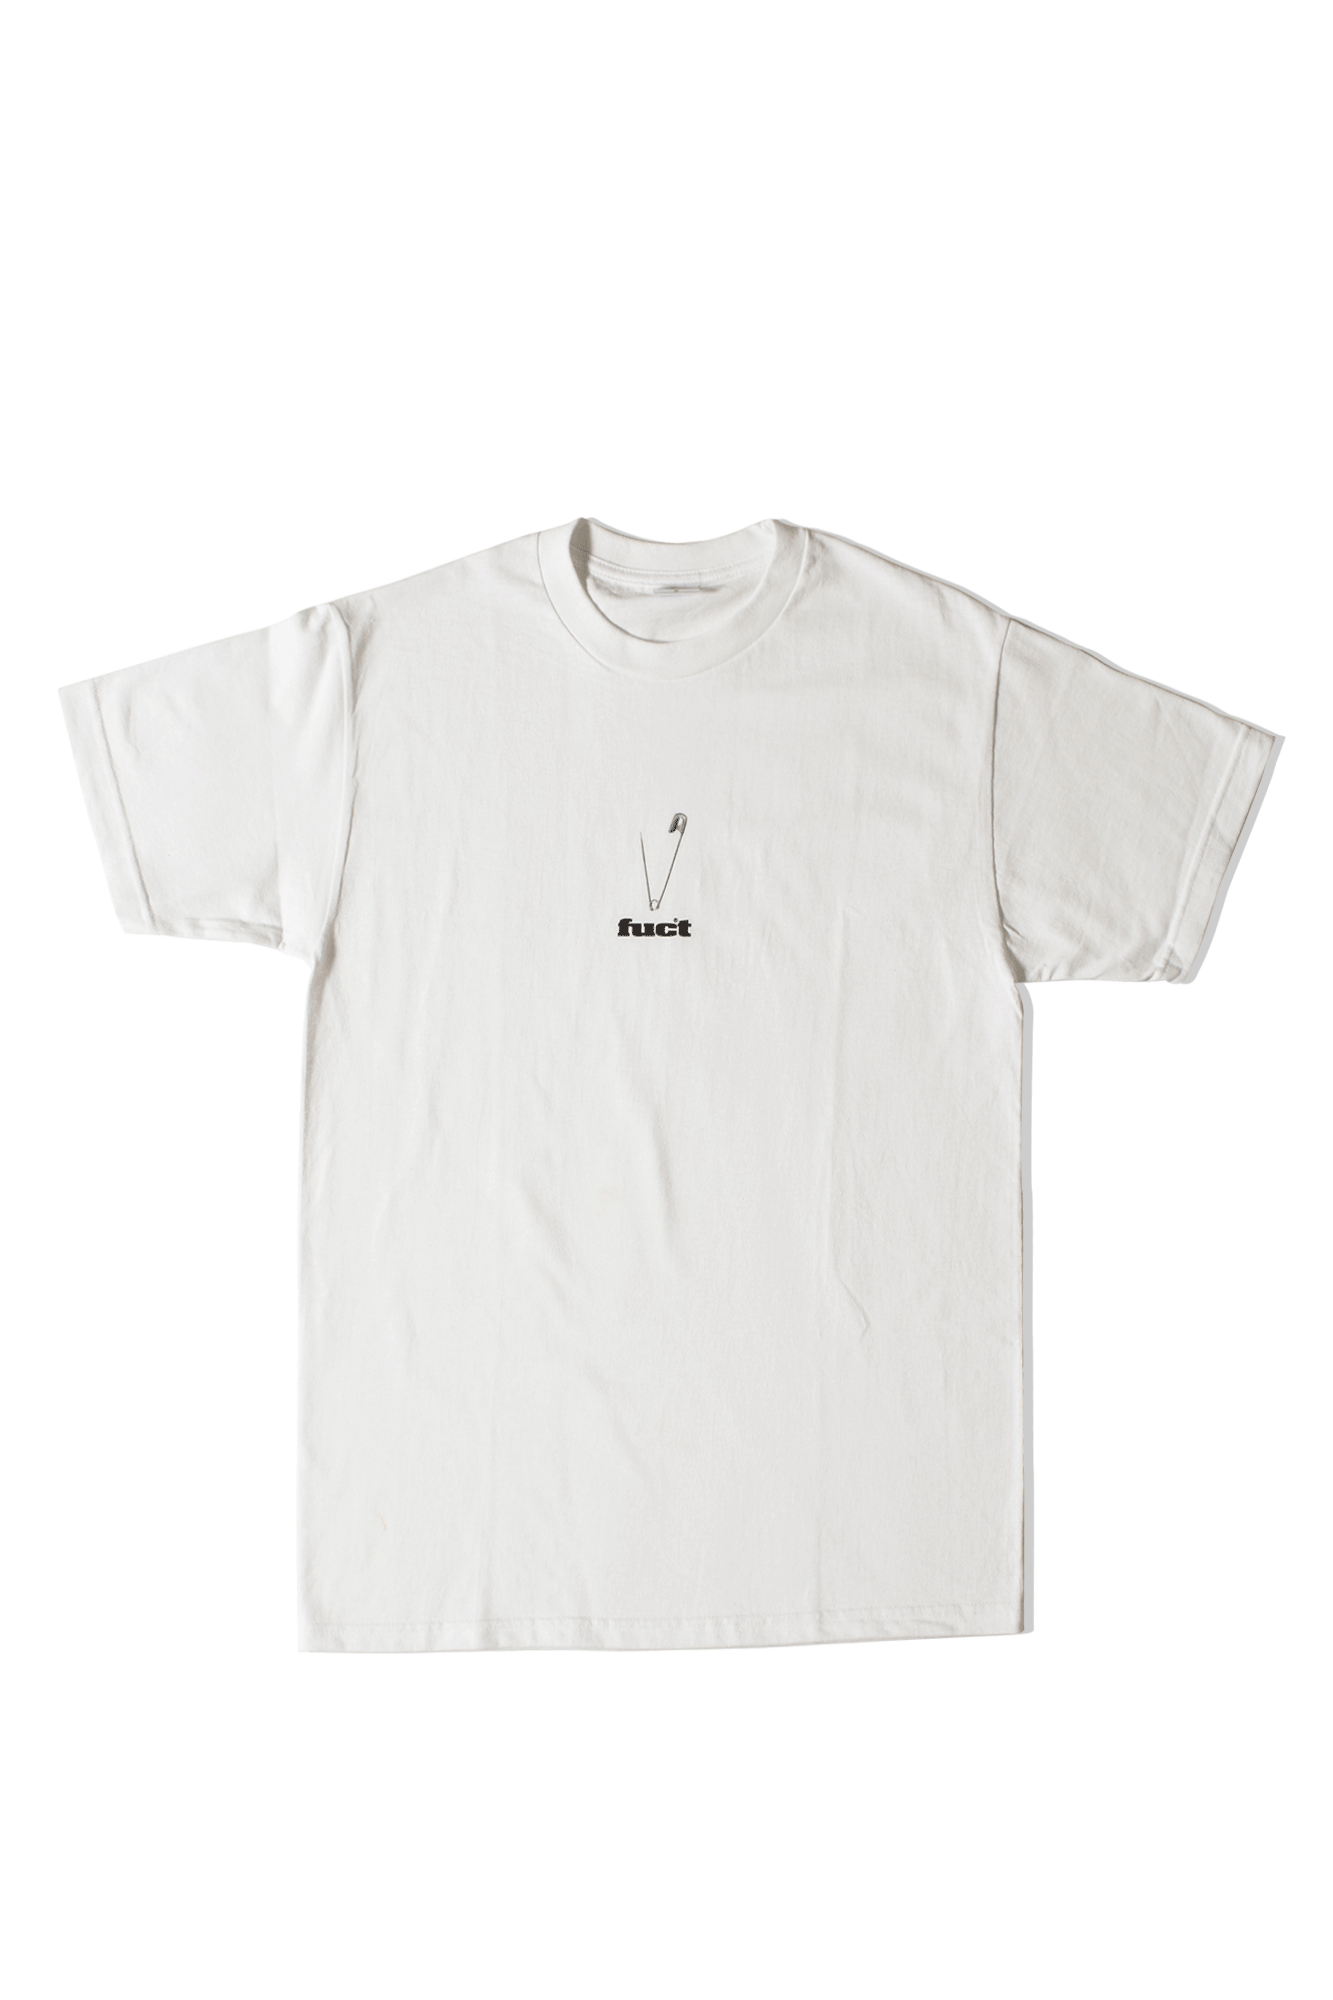 SAFETY PIN T-SHIRT White